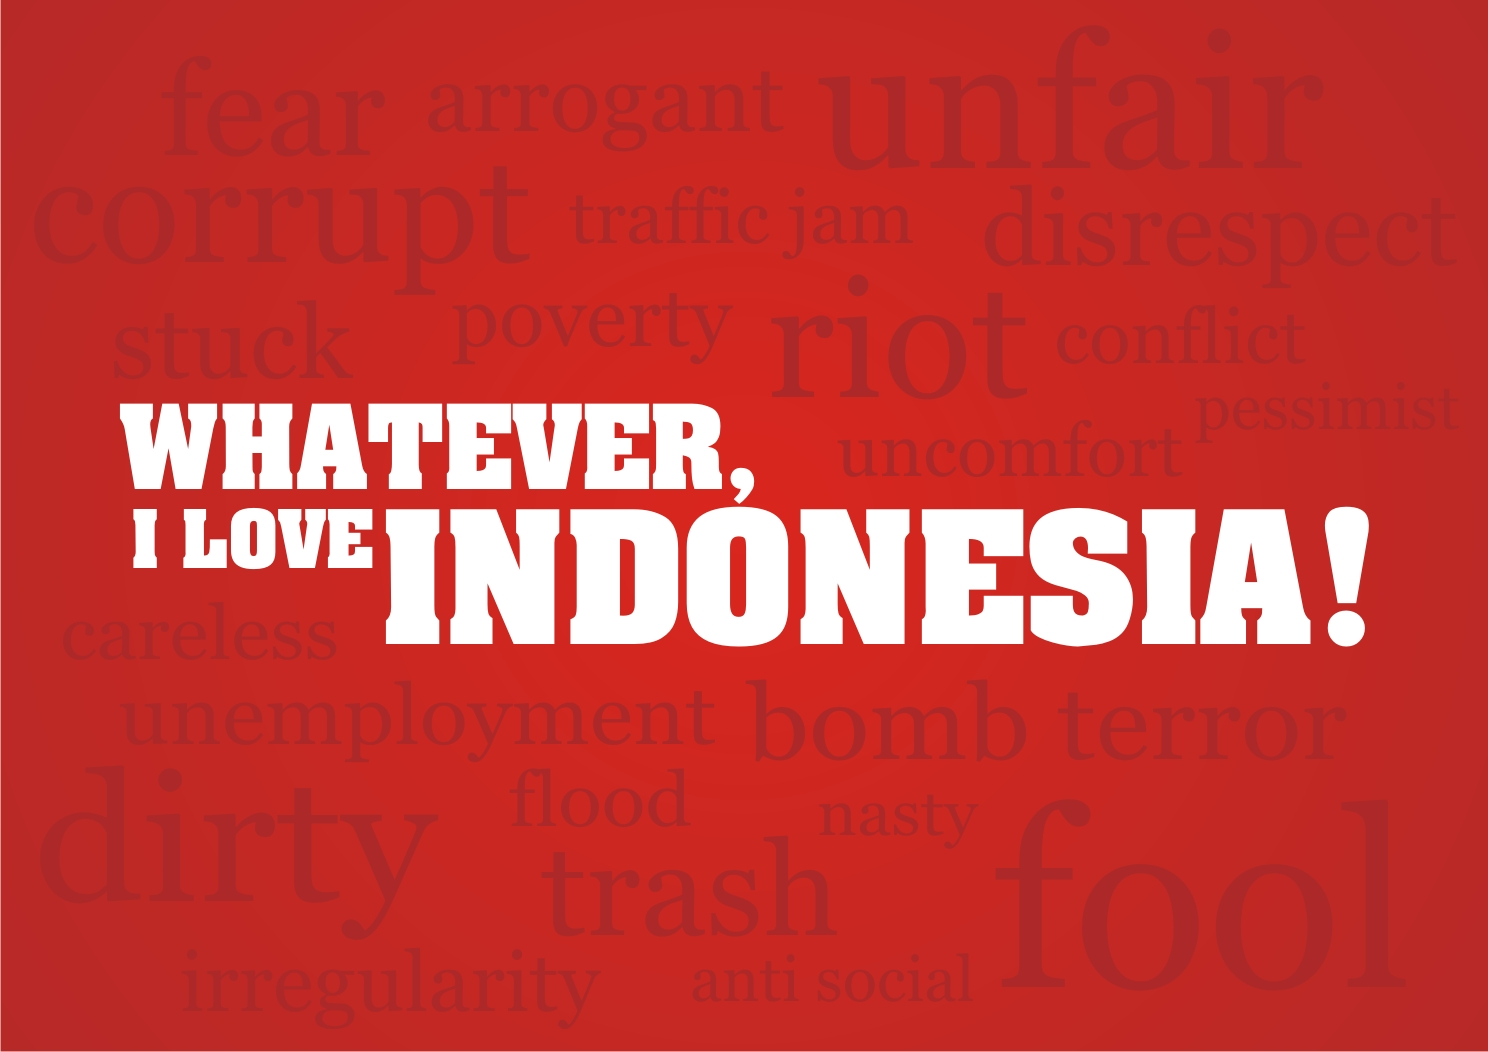 http://3.bp.blogspot.com/-B1Ci301IEPU/TmrO02ZpNBI/AAAAAAAAAj4/1R0jXx1l-ds/s1600/wallpaper+TIMNAS+INDONESIA+2011+by+ofic+sam+l+%2528FP%2529AREMA+INDONESIA+wallpapers%25284%2529.jpg